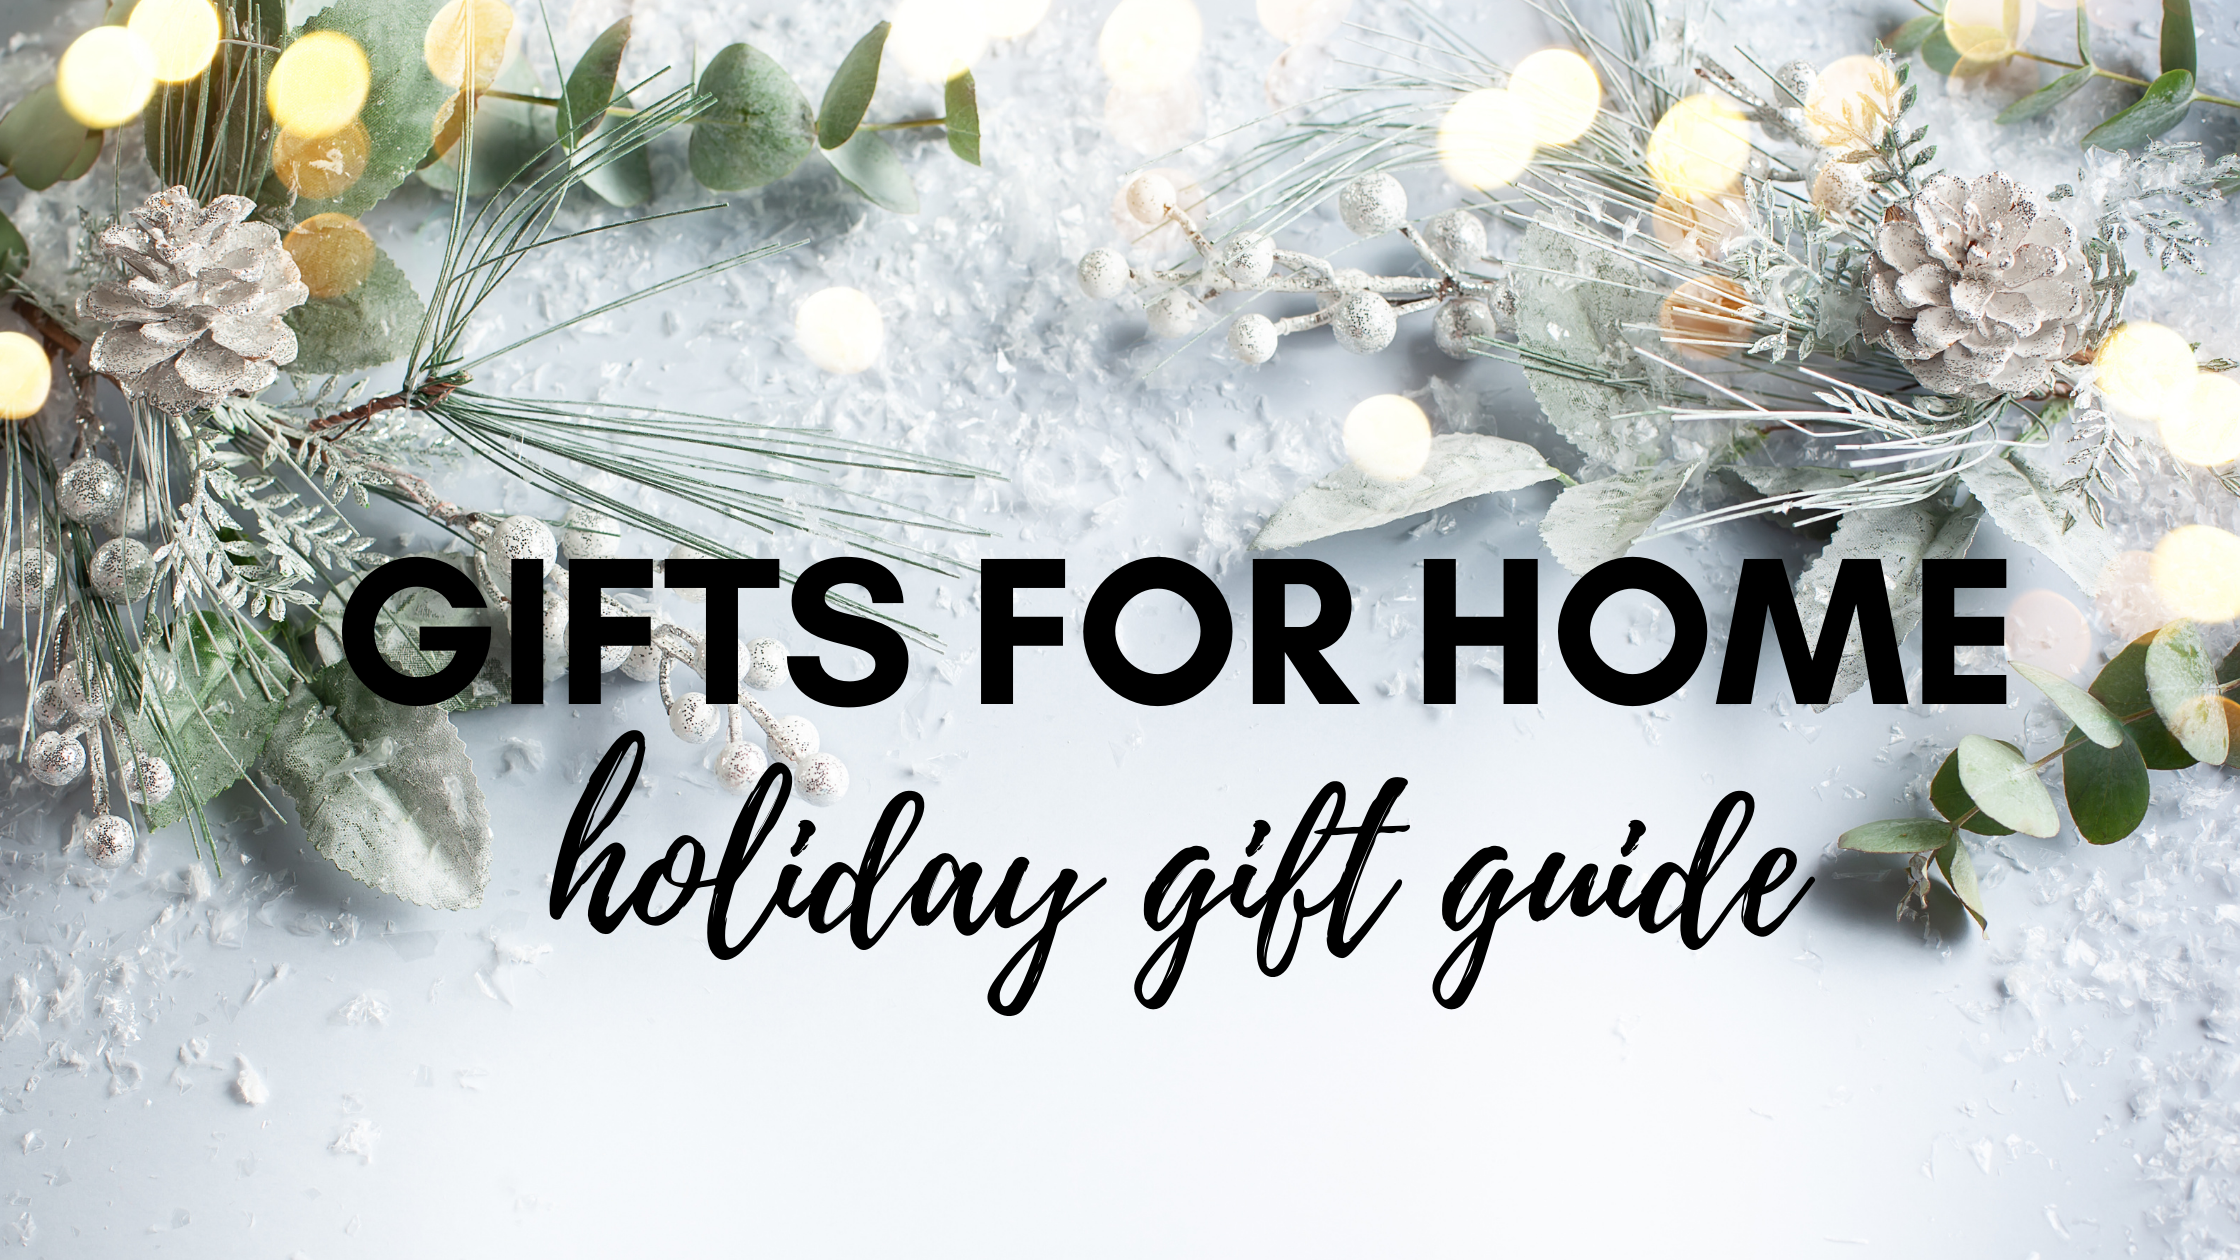 2020 Holiday Gift Guide, gifts for home